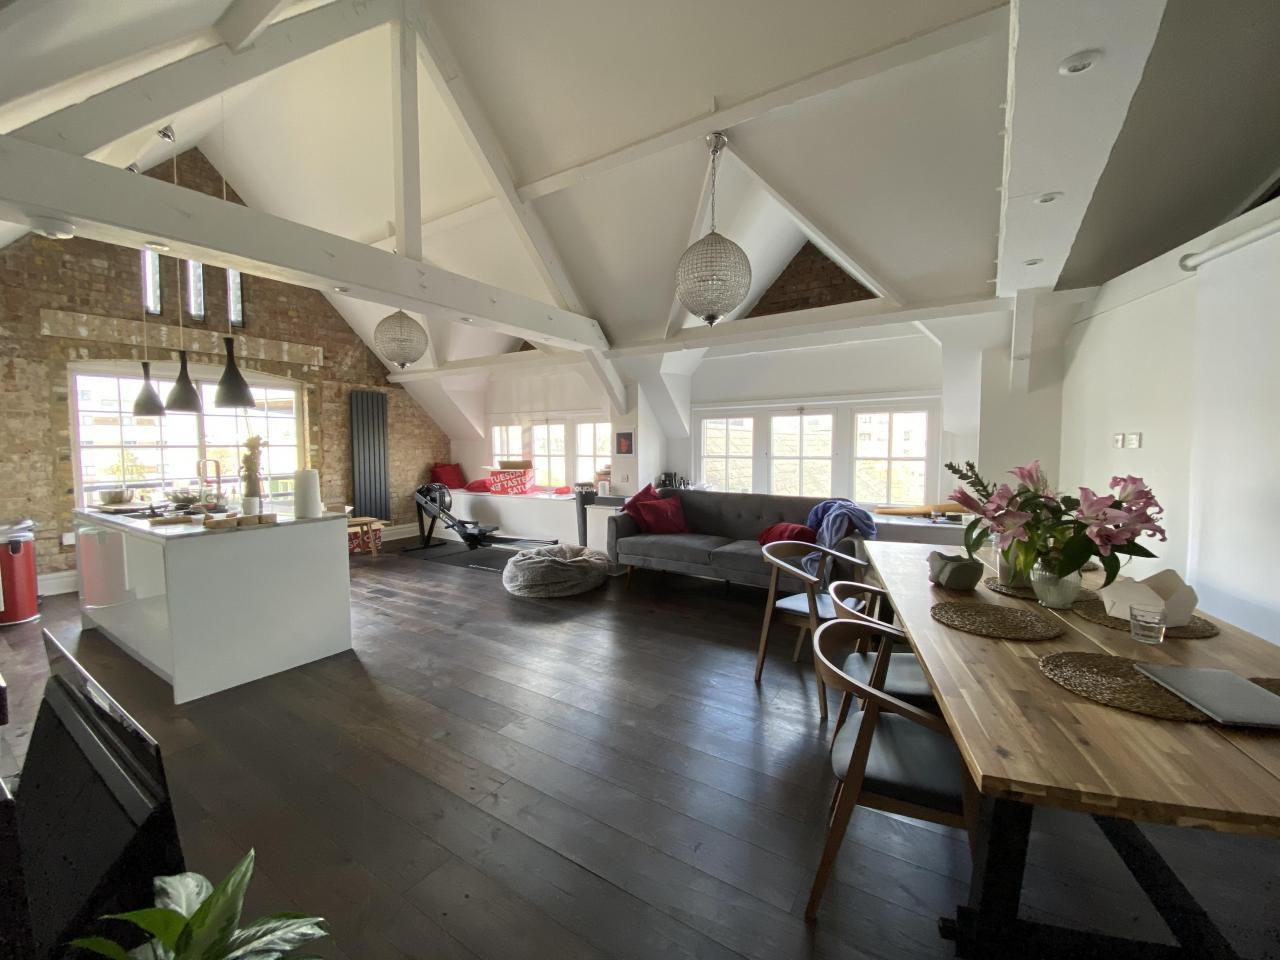 Bright room in Victorian style house - 3